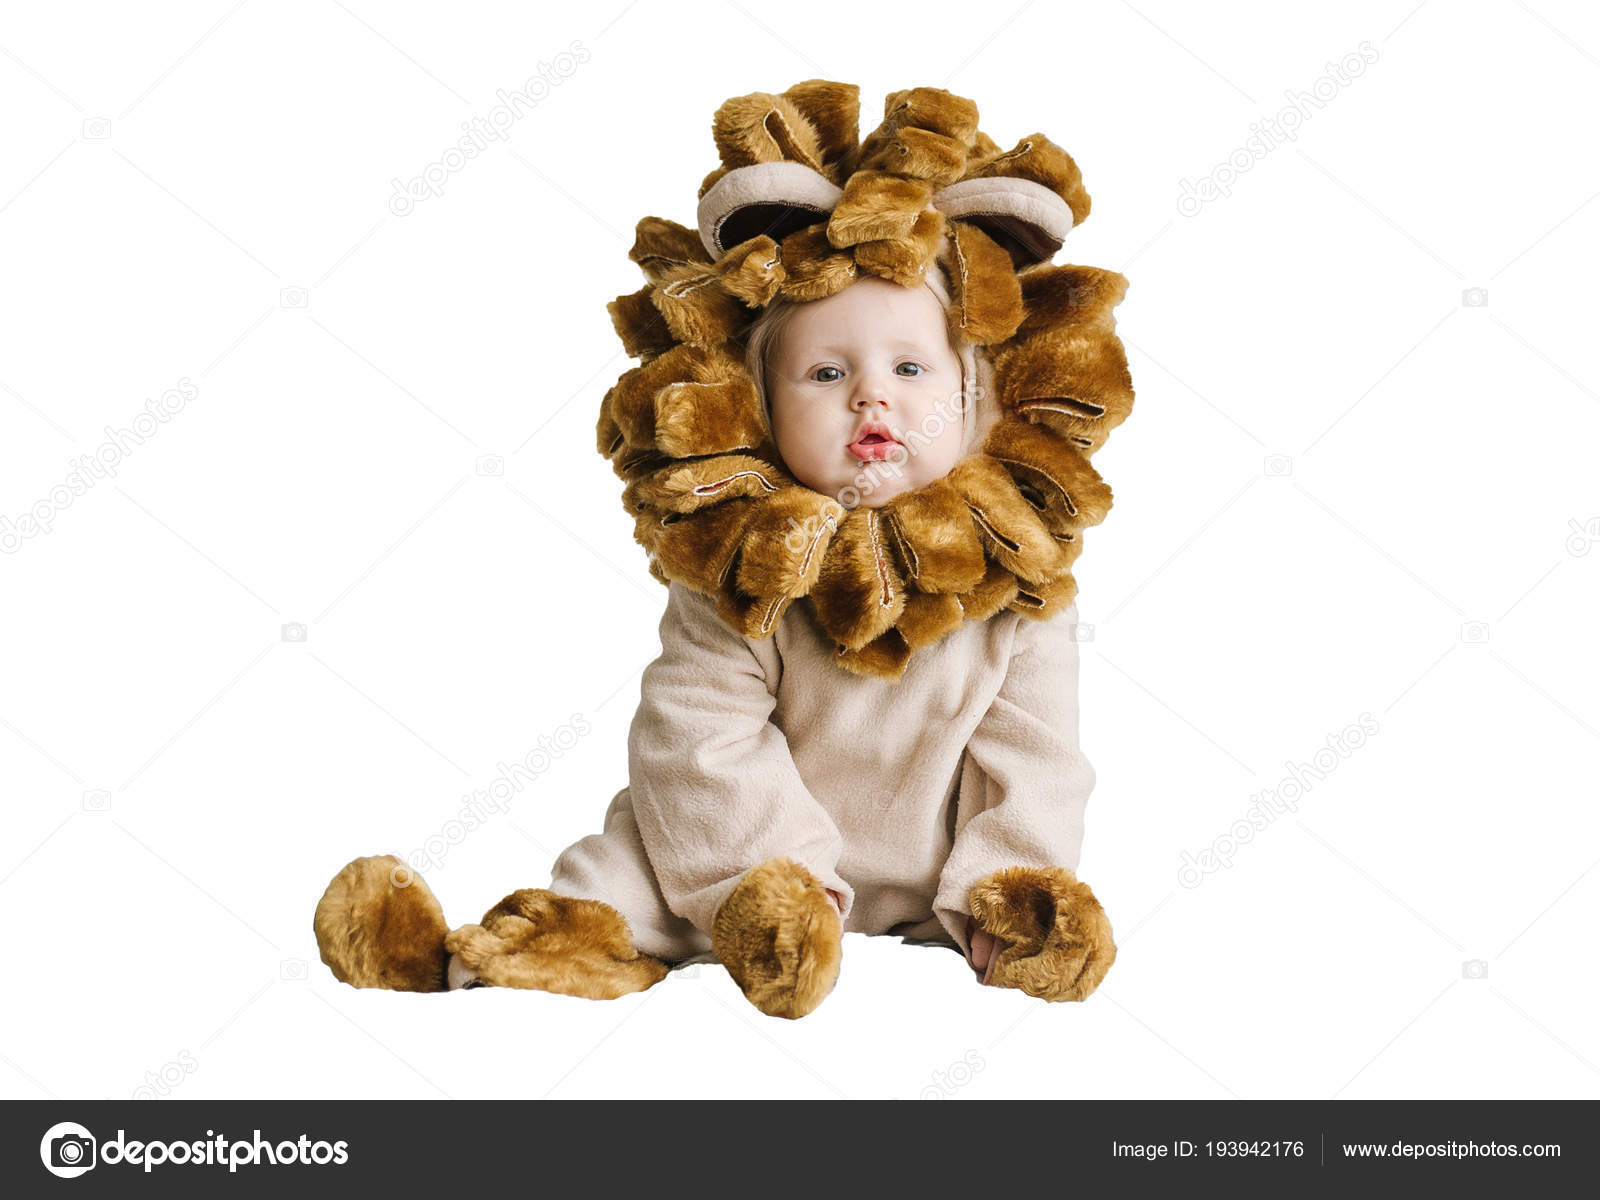 Handsome plump little child in a lion costume. u2014 Stock Photo  sc 1 st  Depositphotos & Handsome plump little child in a lion costume. u2014 Stock Photo ...